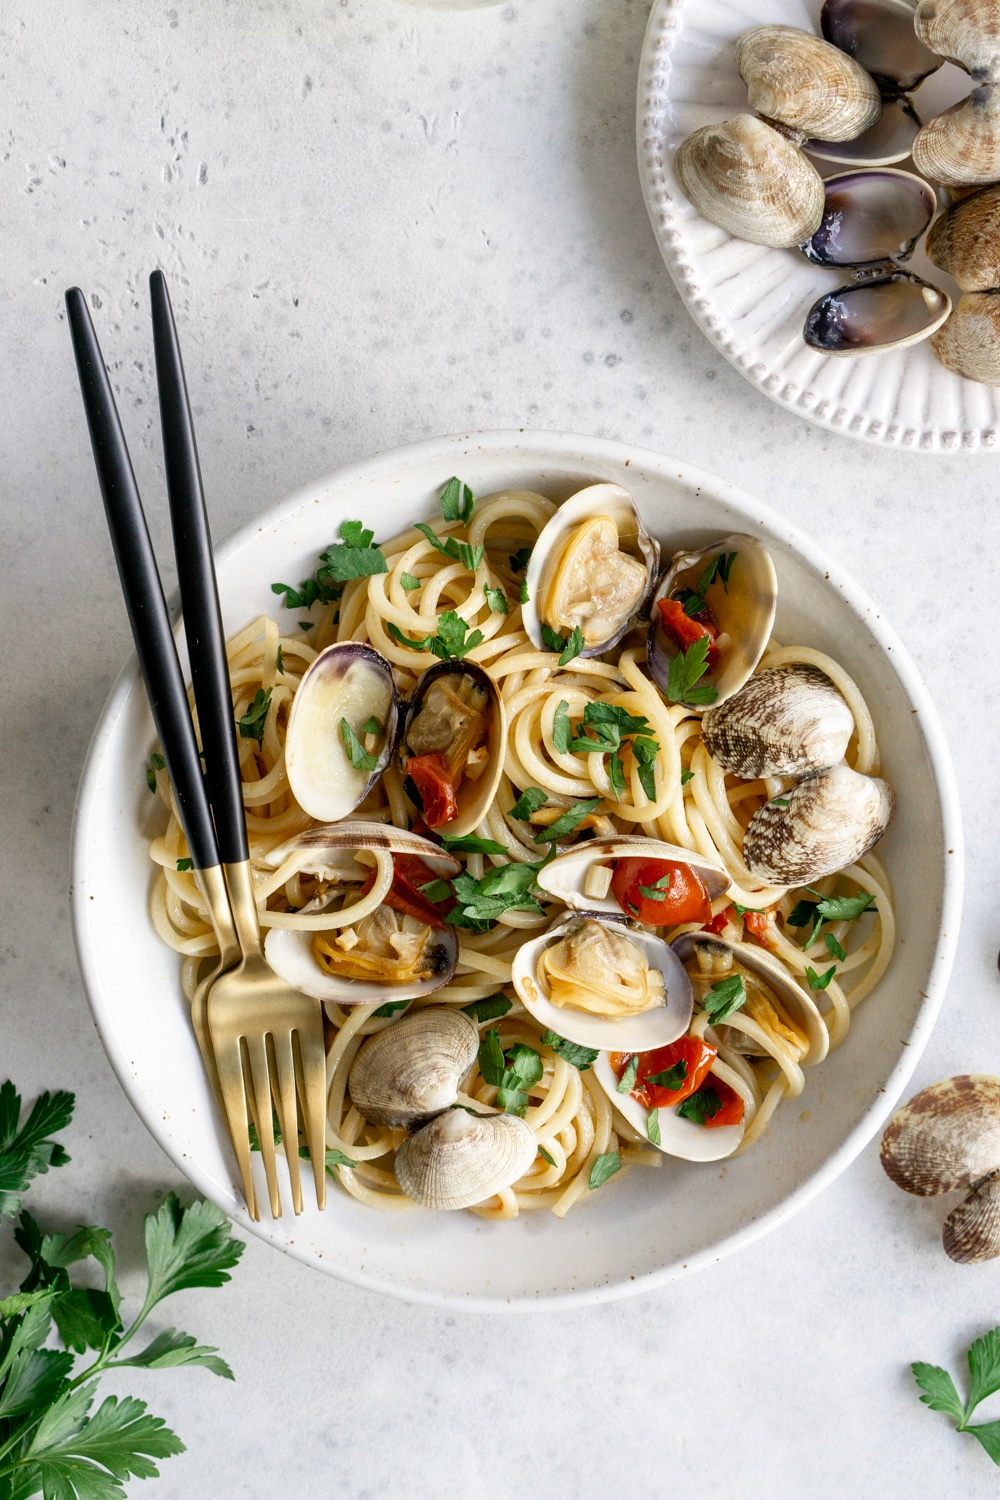 Clam pasta in a bowl with two forks, with a buncb of parsley to the left